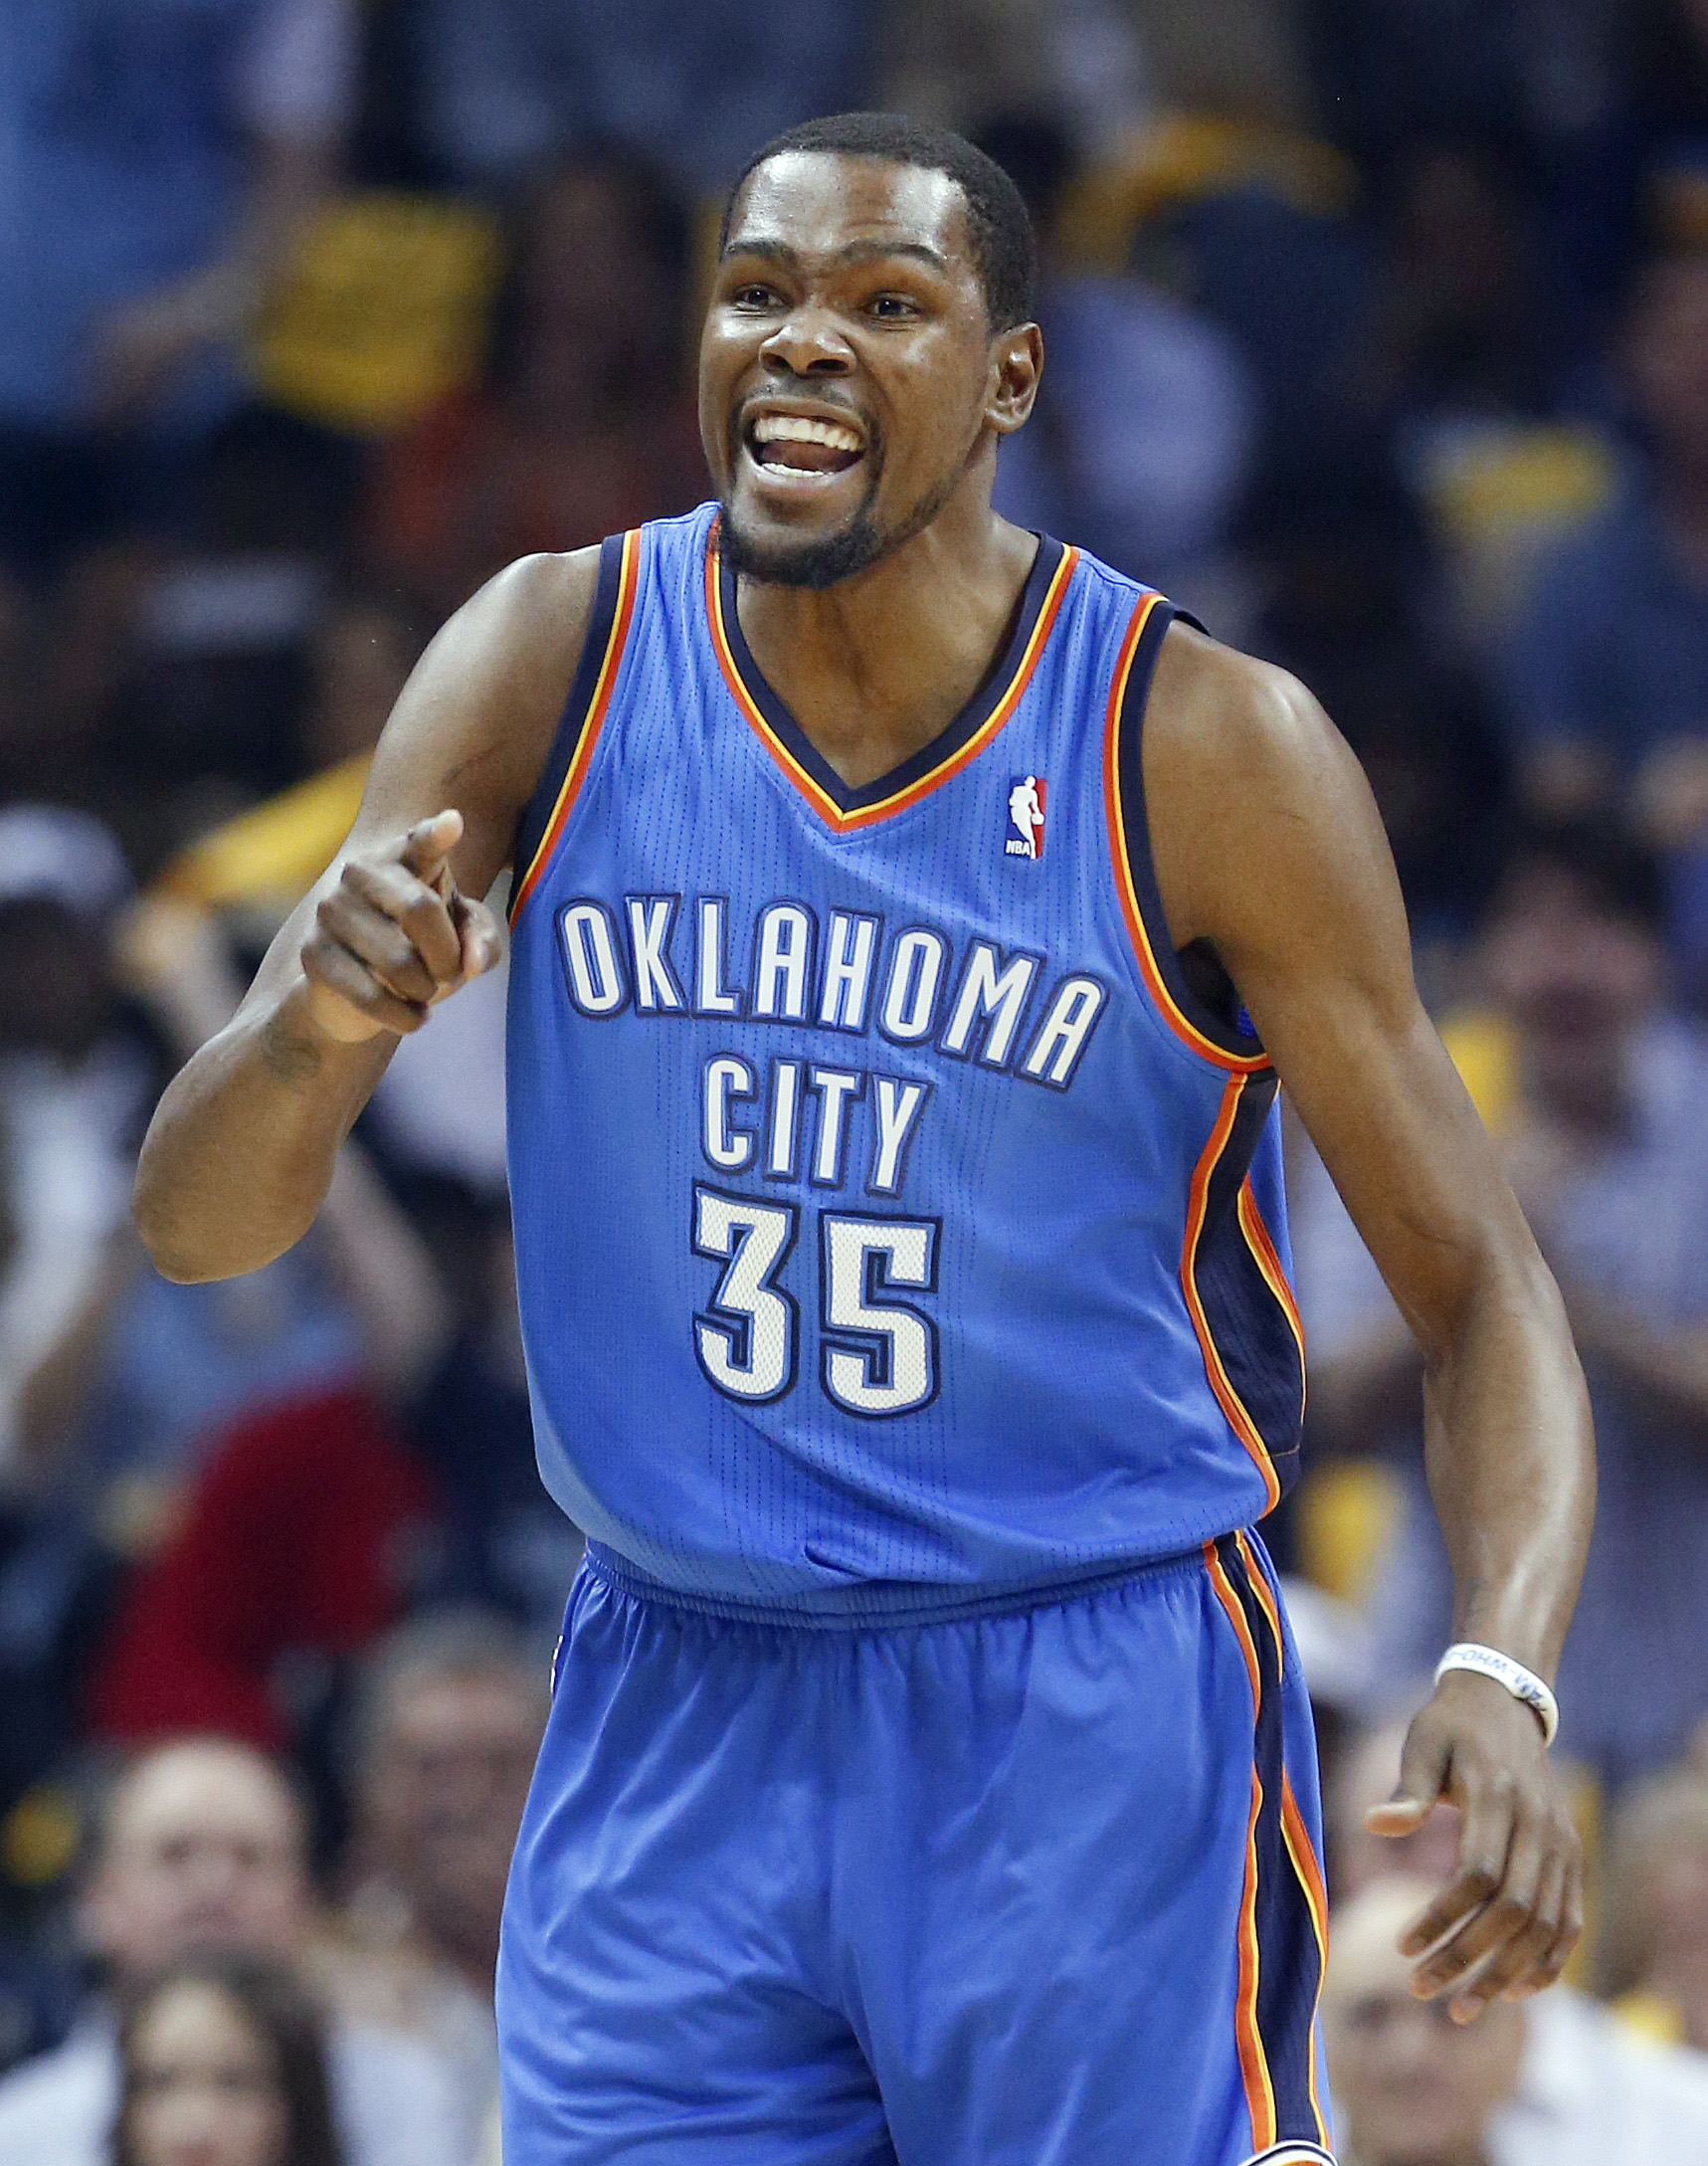 Grizzlies face Game 7 without top scorer Randolph